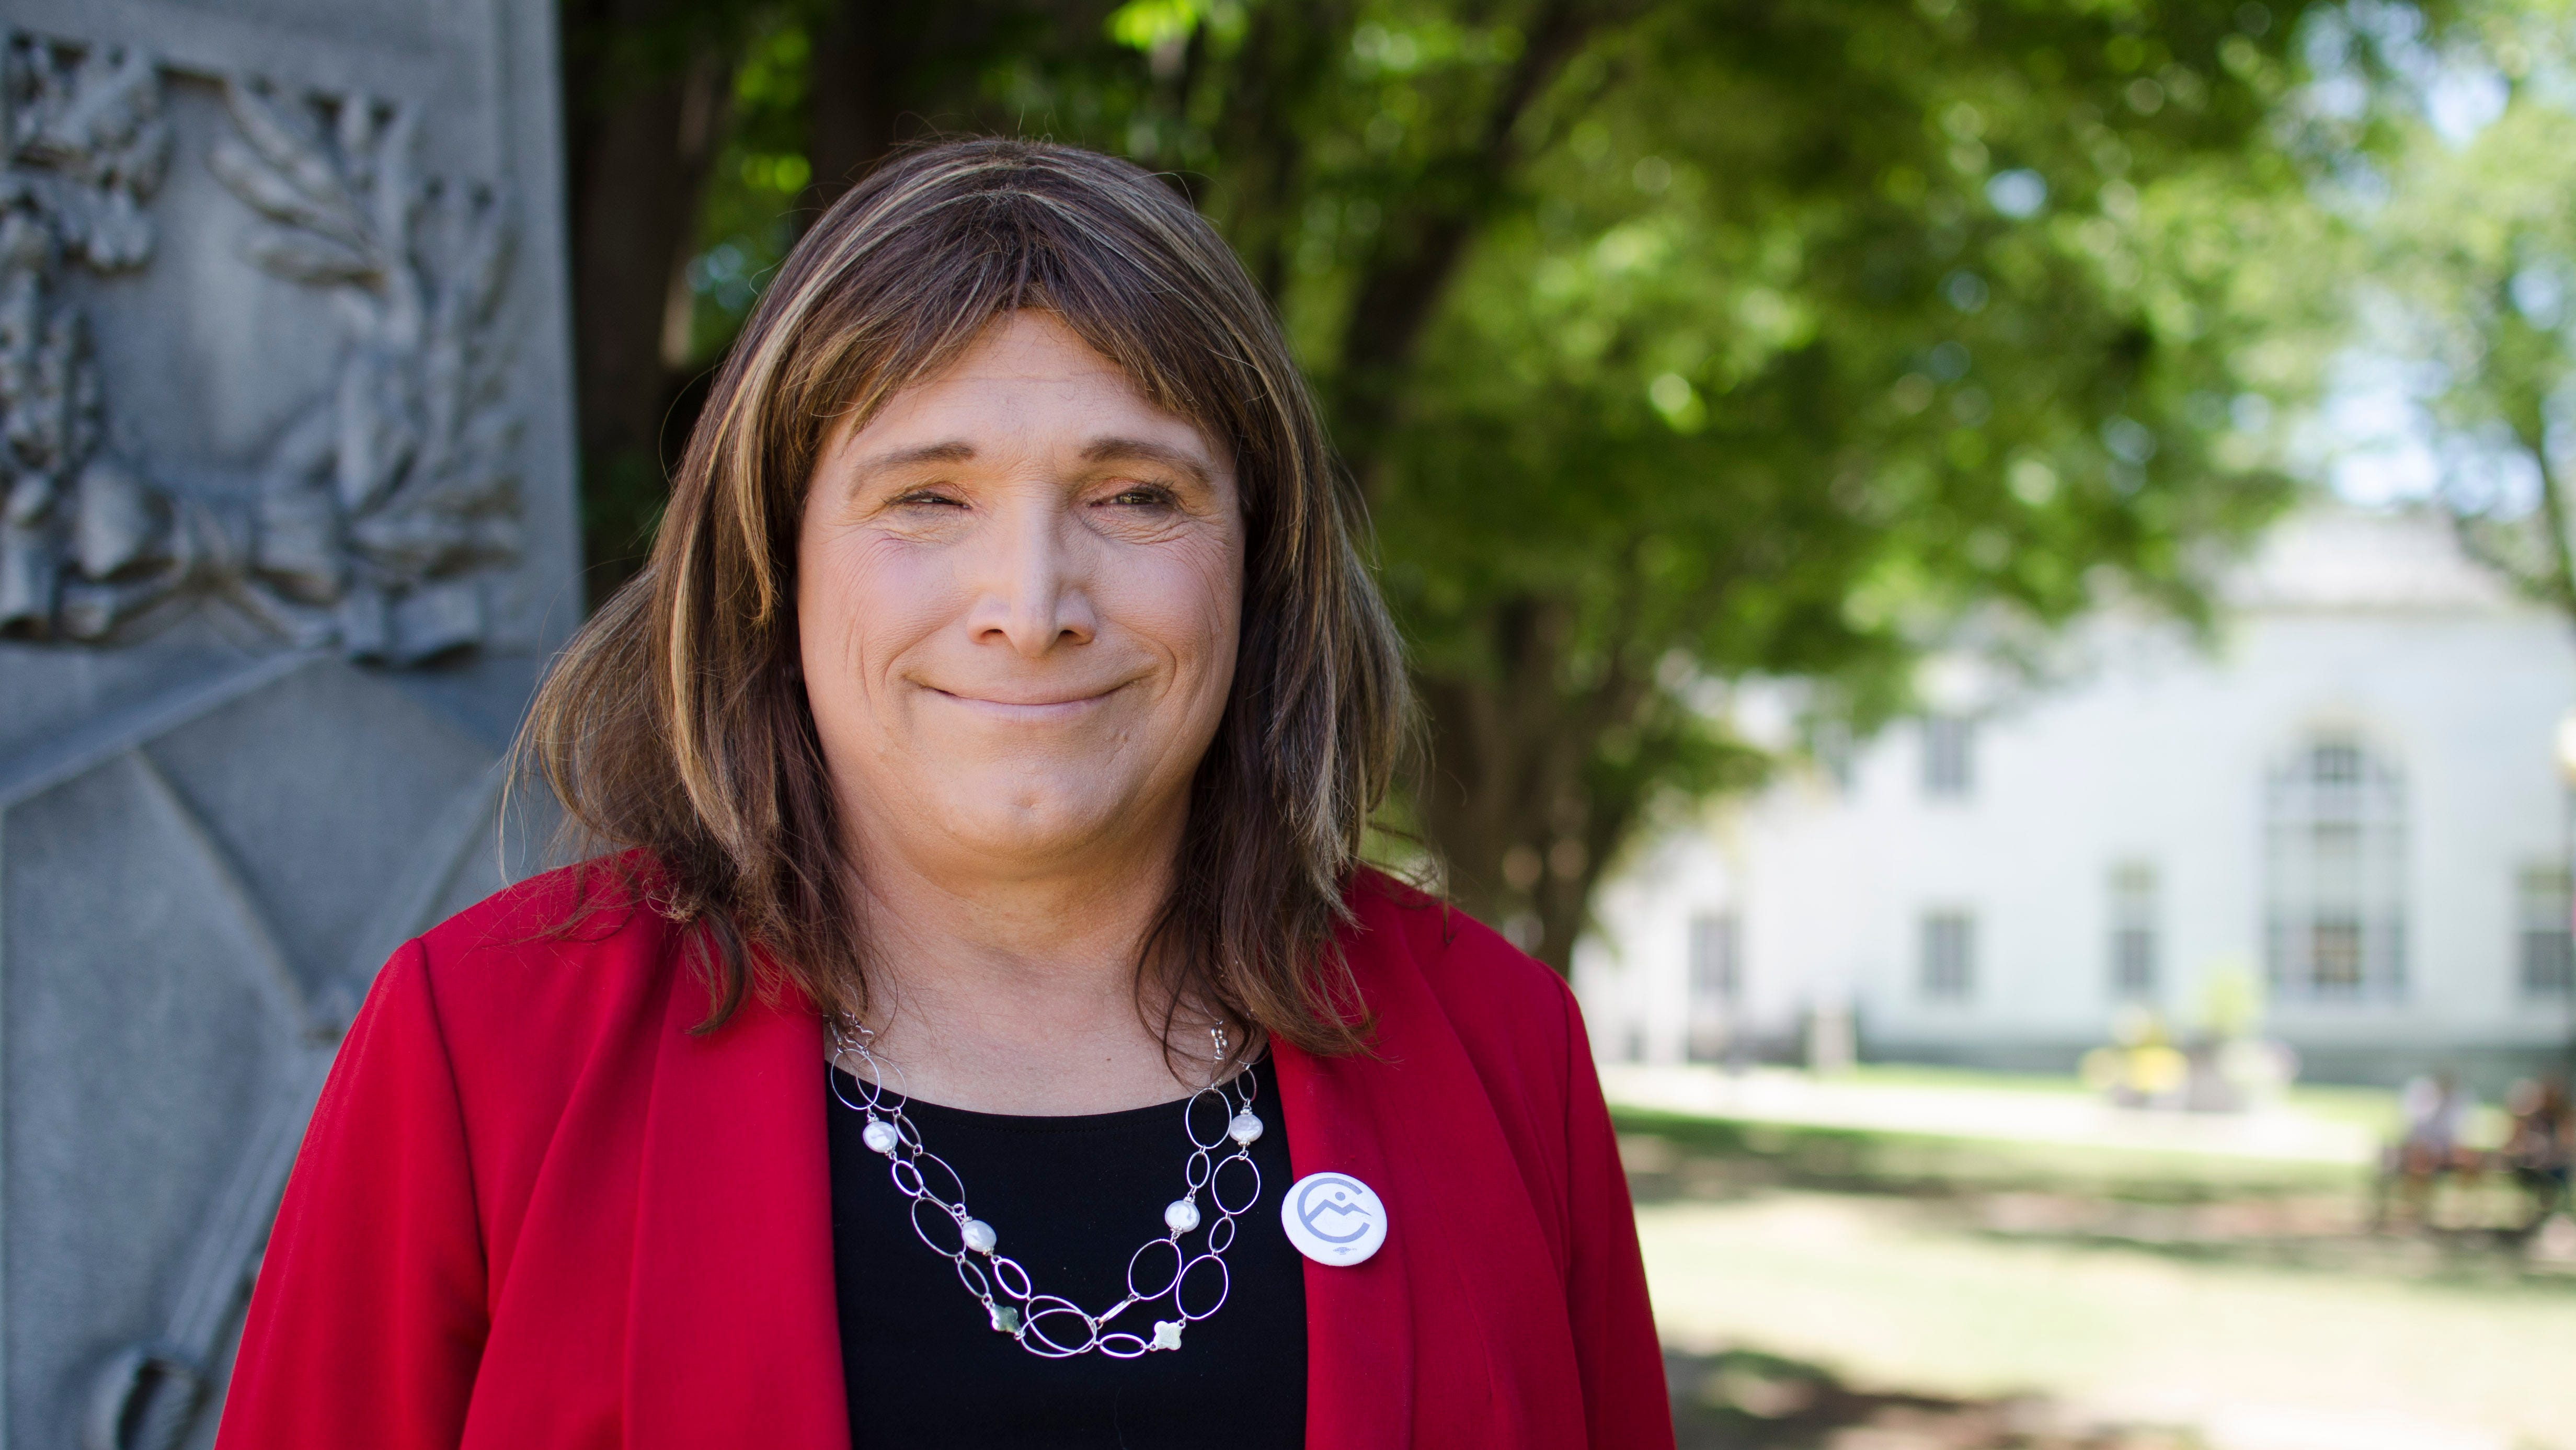 Christine Hallquist became first transgender candidate for governor. But can she unseat the incumbent?